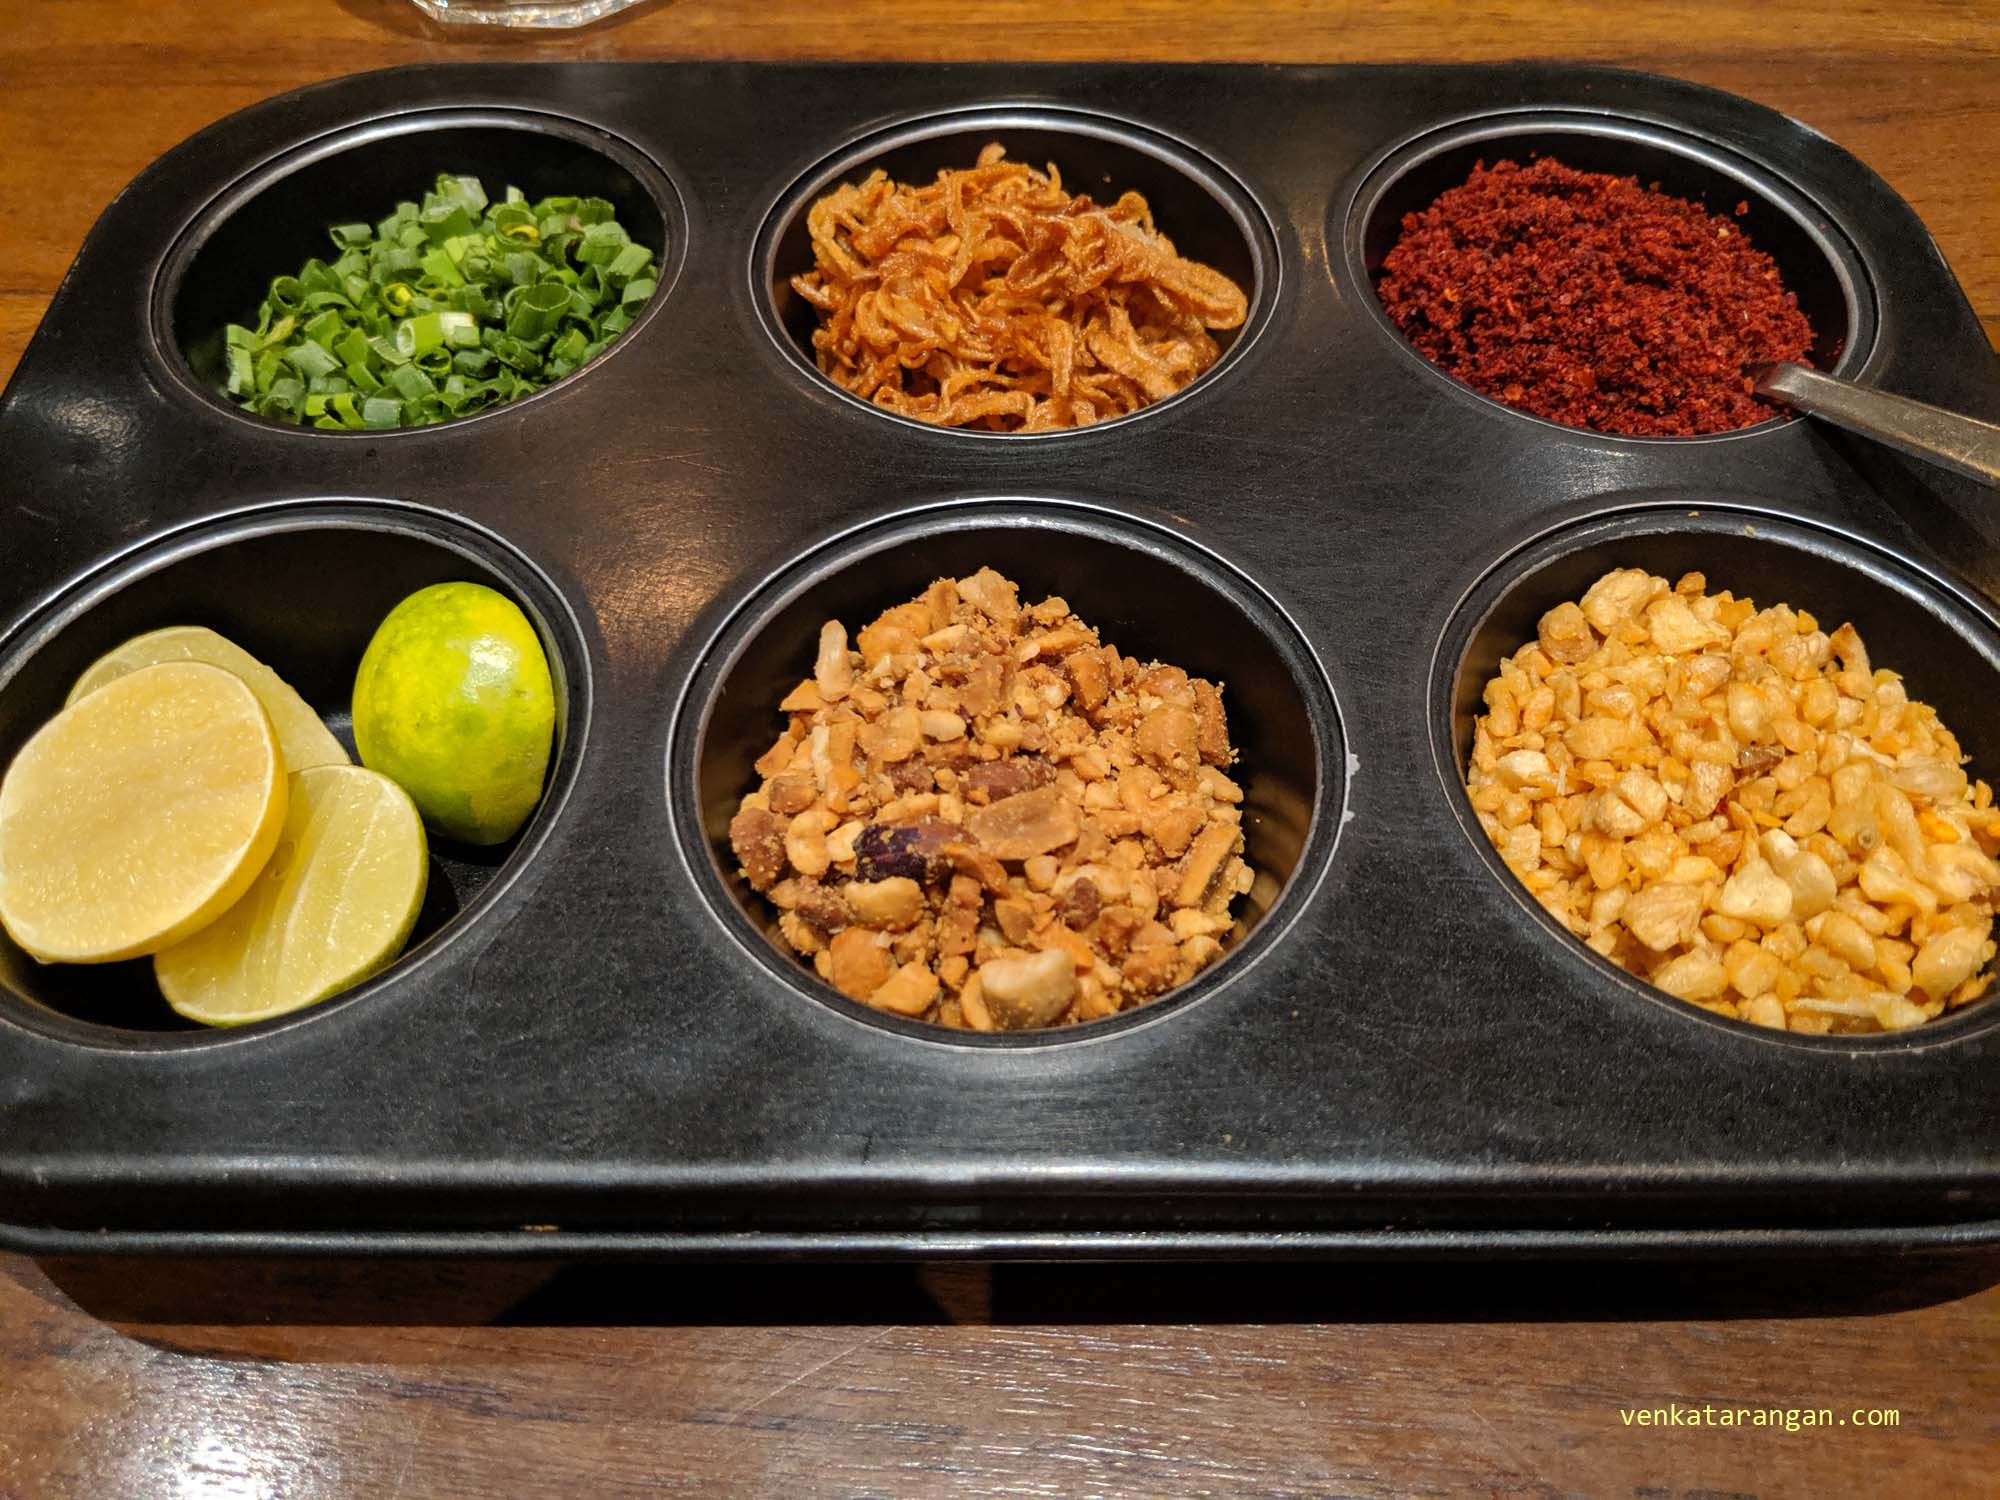 Selection of condiments - cut lime, garlic savoury, red chili powder and roasted onions